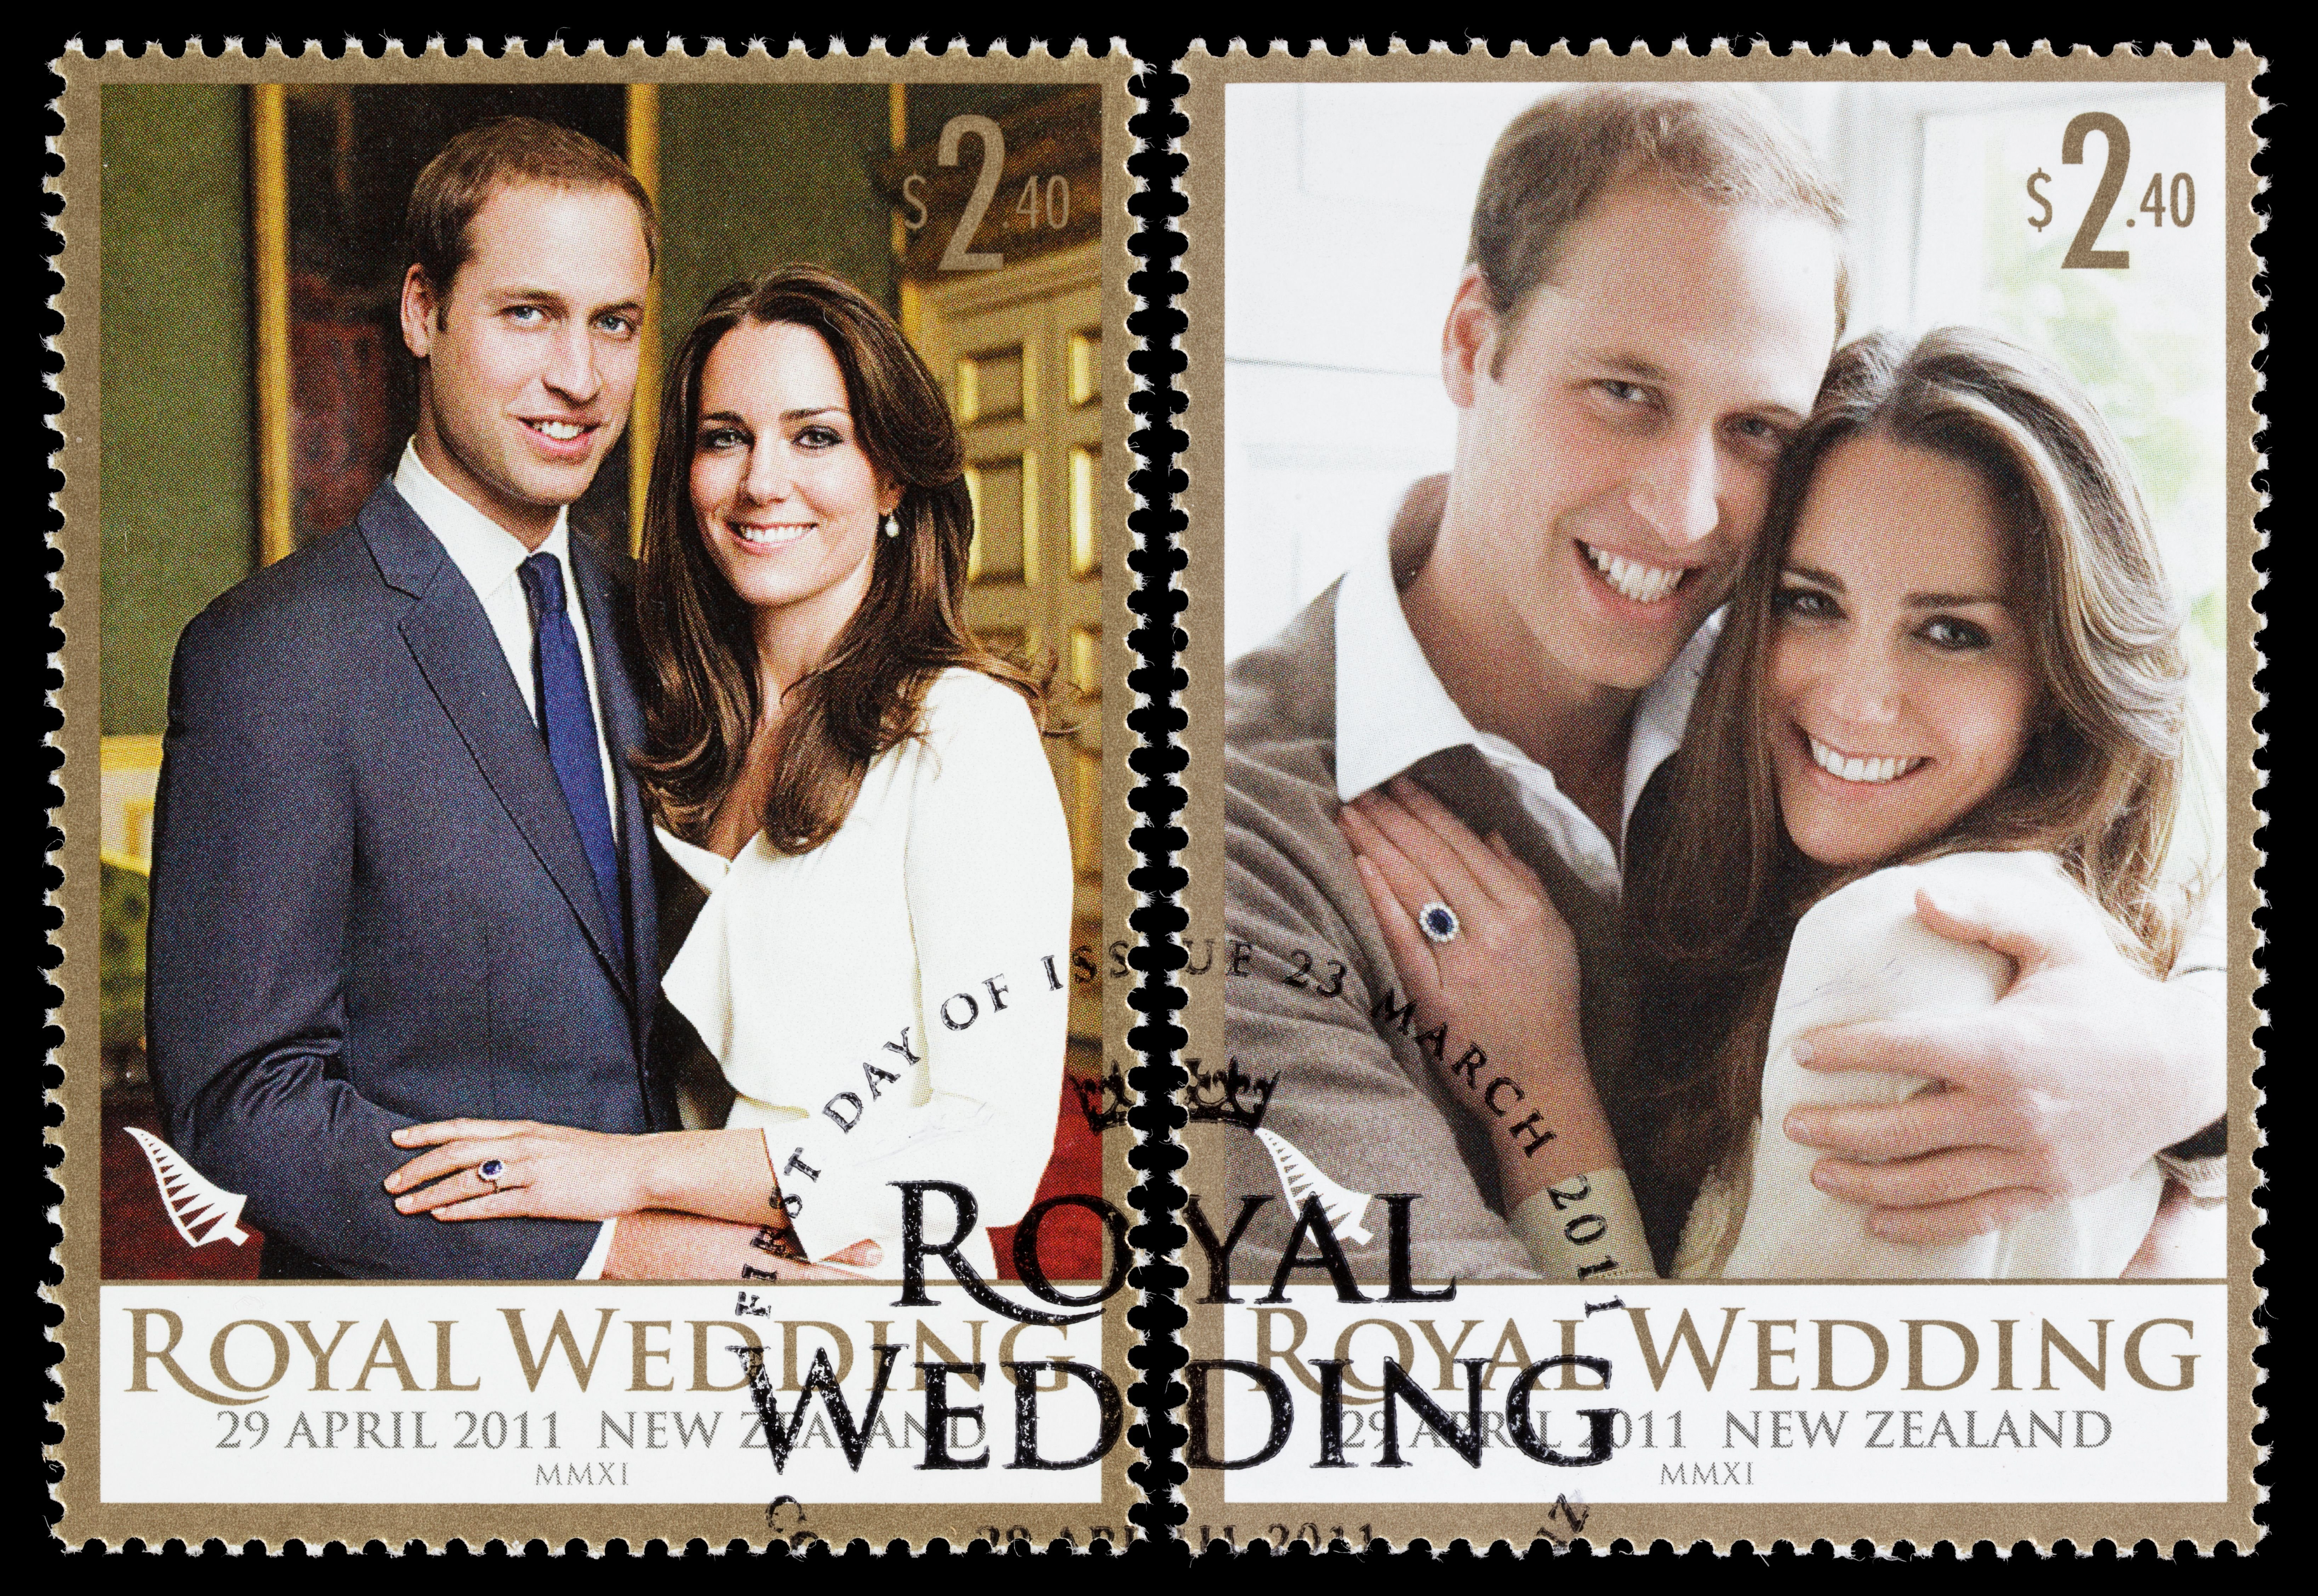 Photo of Prince William and Kate Middleton's wedding invitation | Photo: Getty Images